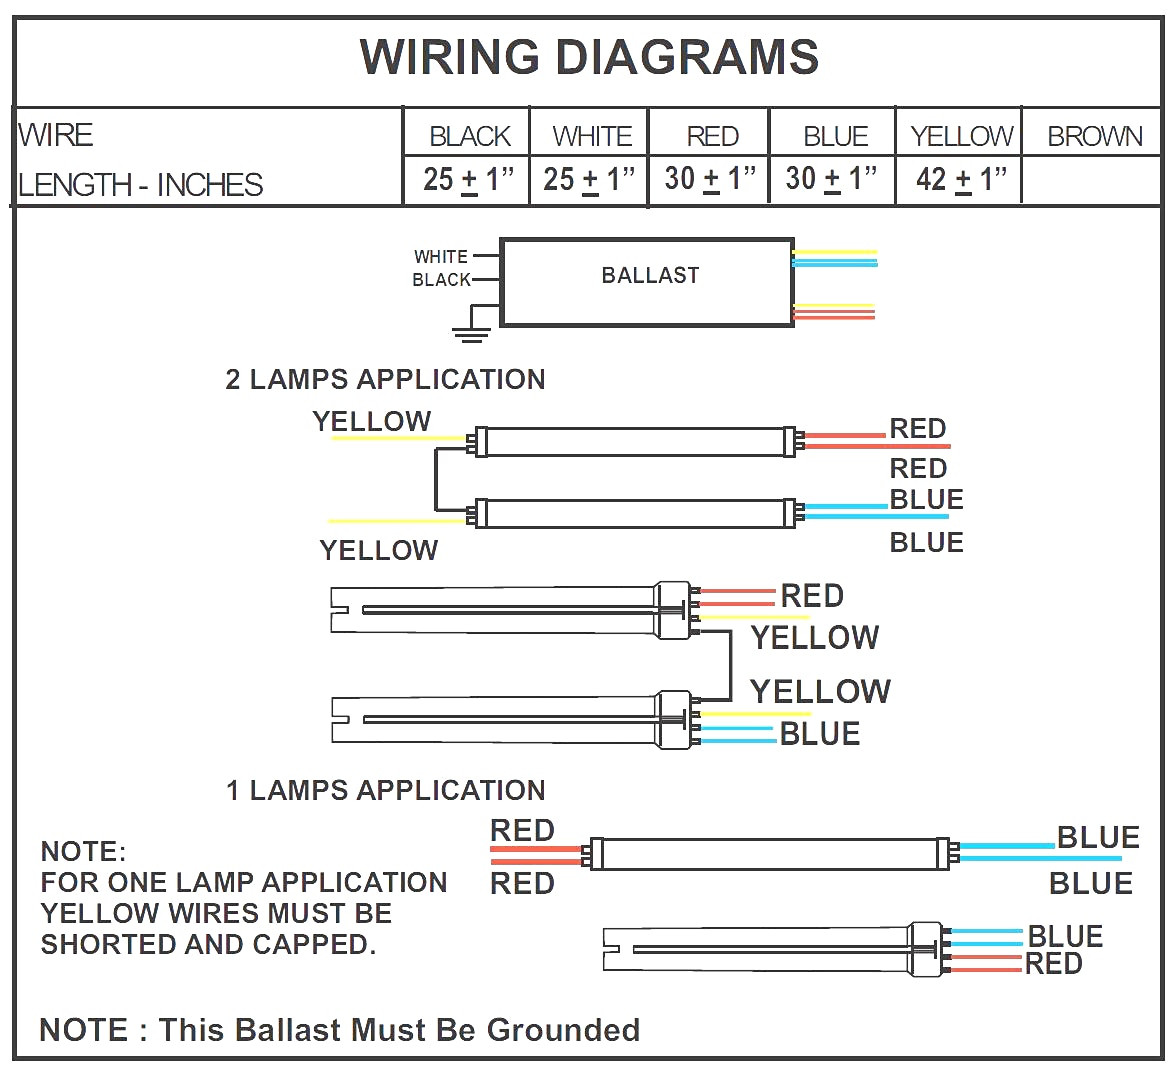 XY_1944] Philips Advance Ballast Wiring Diagram T5 454 Download Diagram | Advance Ballast Wiring Diagram |  | Atolo Ospor Elia Monoc Emba Icand Weveq Terst Awni Eopsy Peted Oidei Vira  Mohammedshrine Librar Wiring 101